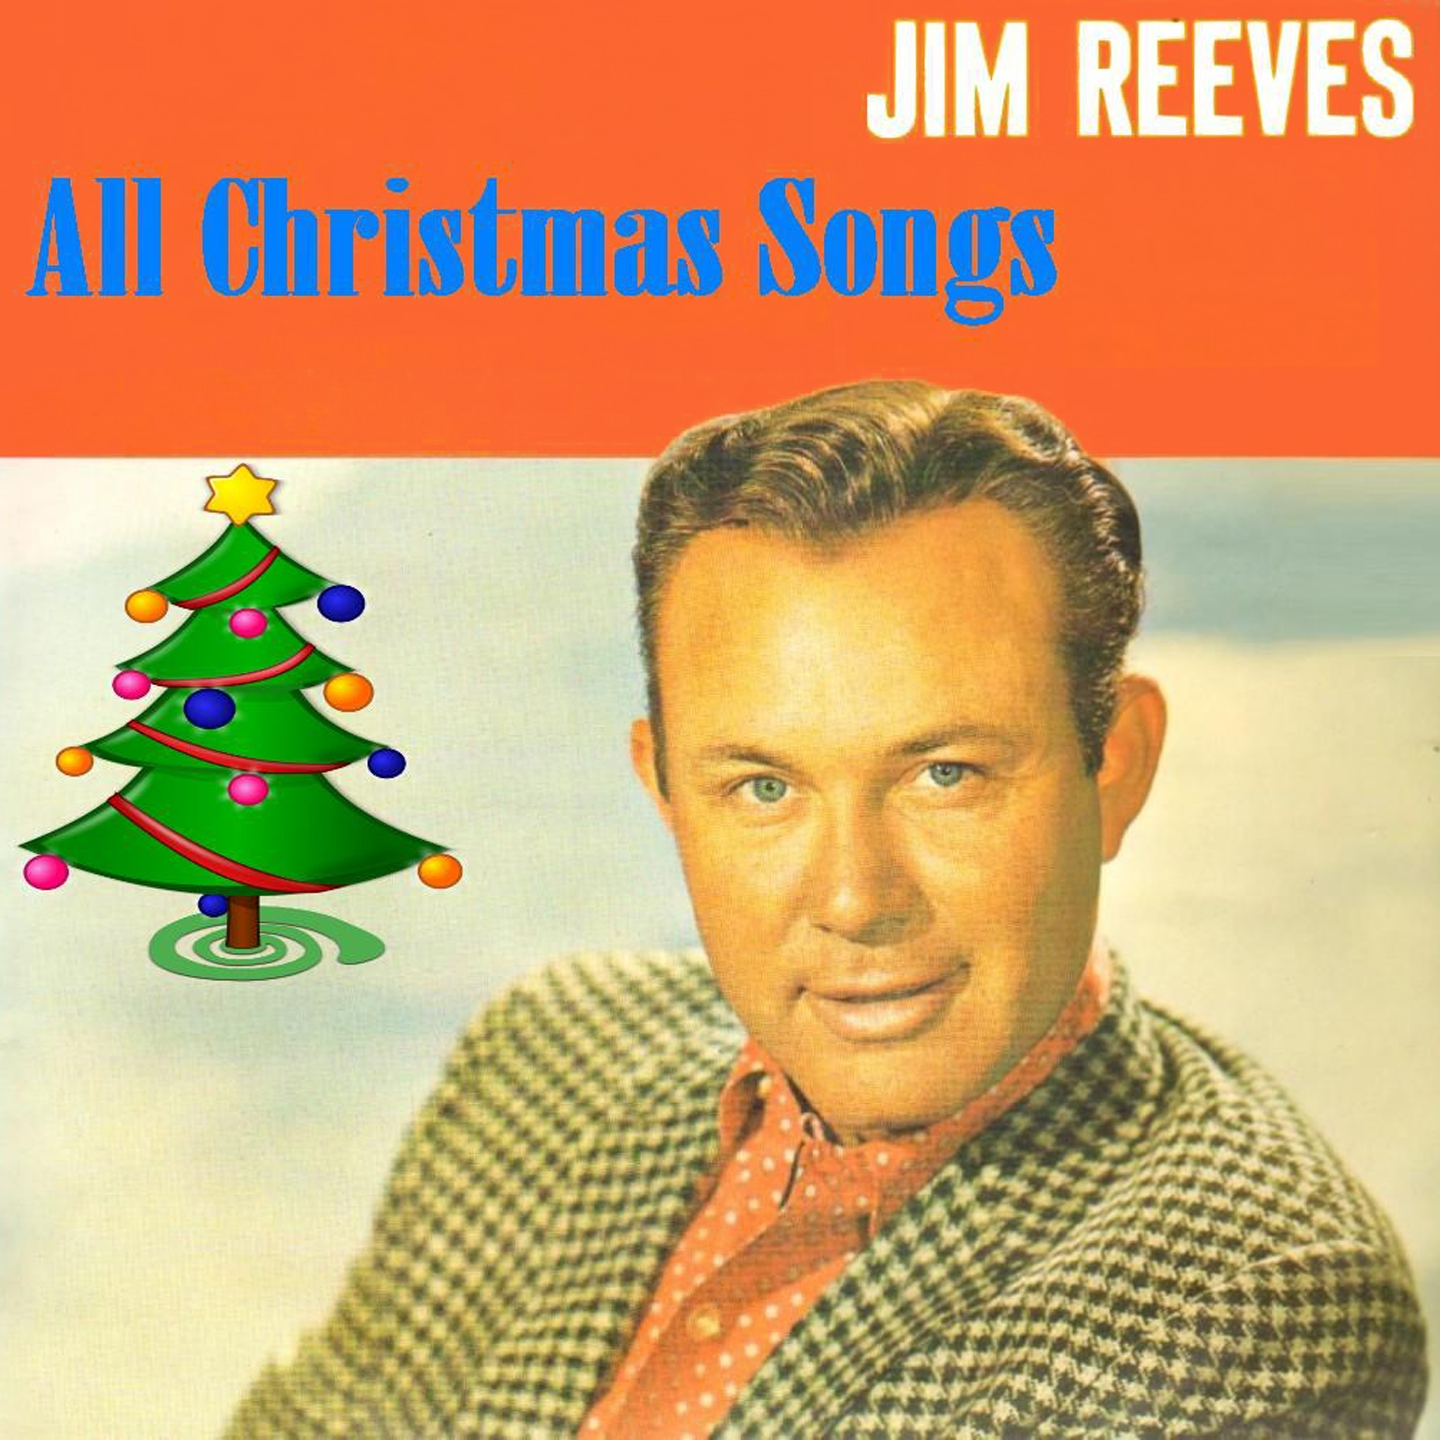 Jim Reeves Radio: Listen to Free Music & Get The Latest Info ...